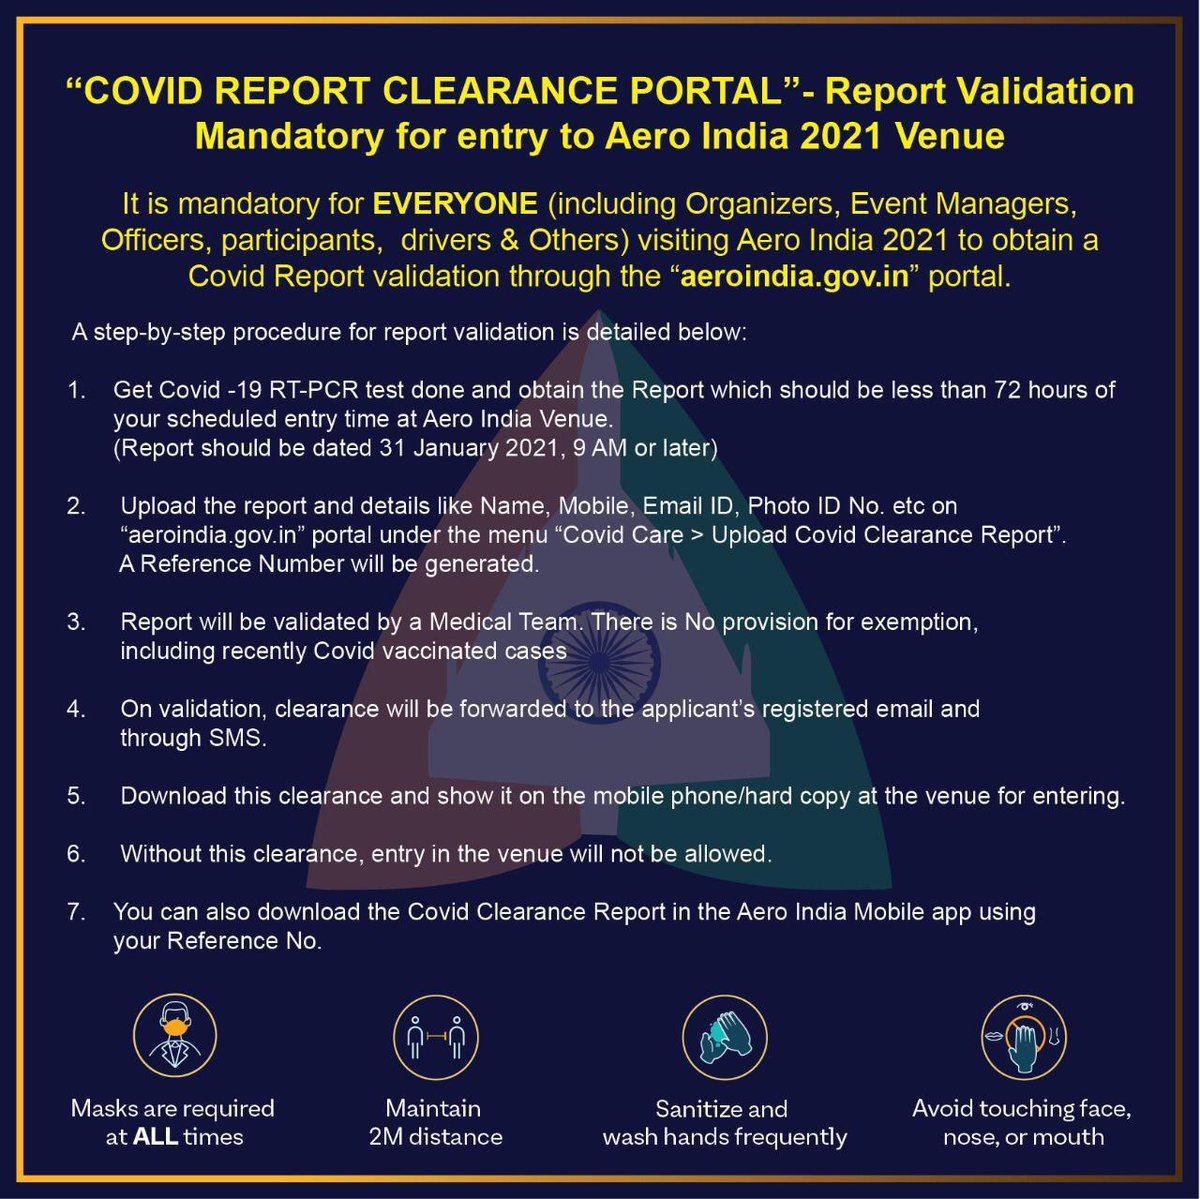 Aero India Alert!  If you are an invitee to #AeroIndia2021, be sure to obtain a COVID report validation through the '' portal. It is mandatory for everyone, including organizers, event managers, officers, participants, etc. Follow the SOPs given below.